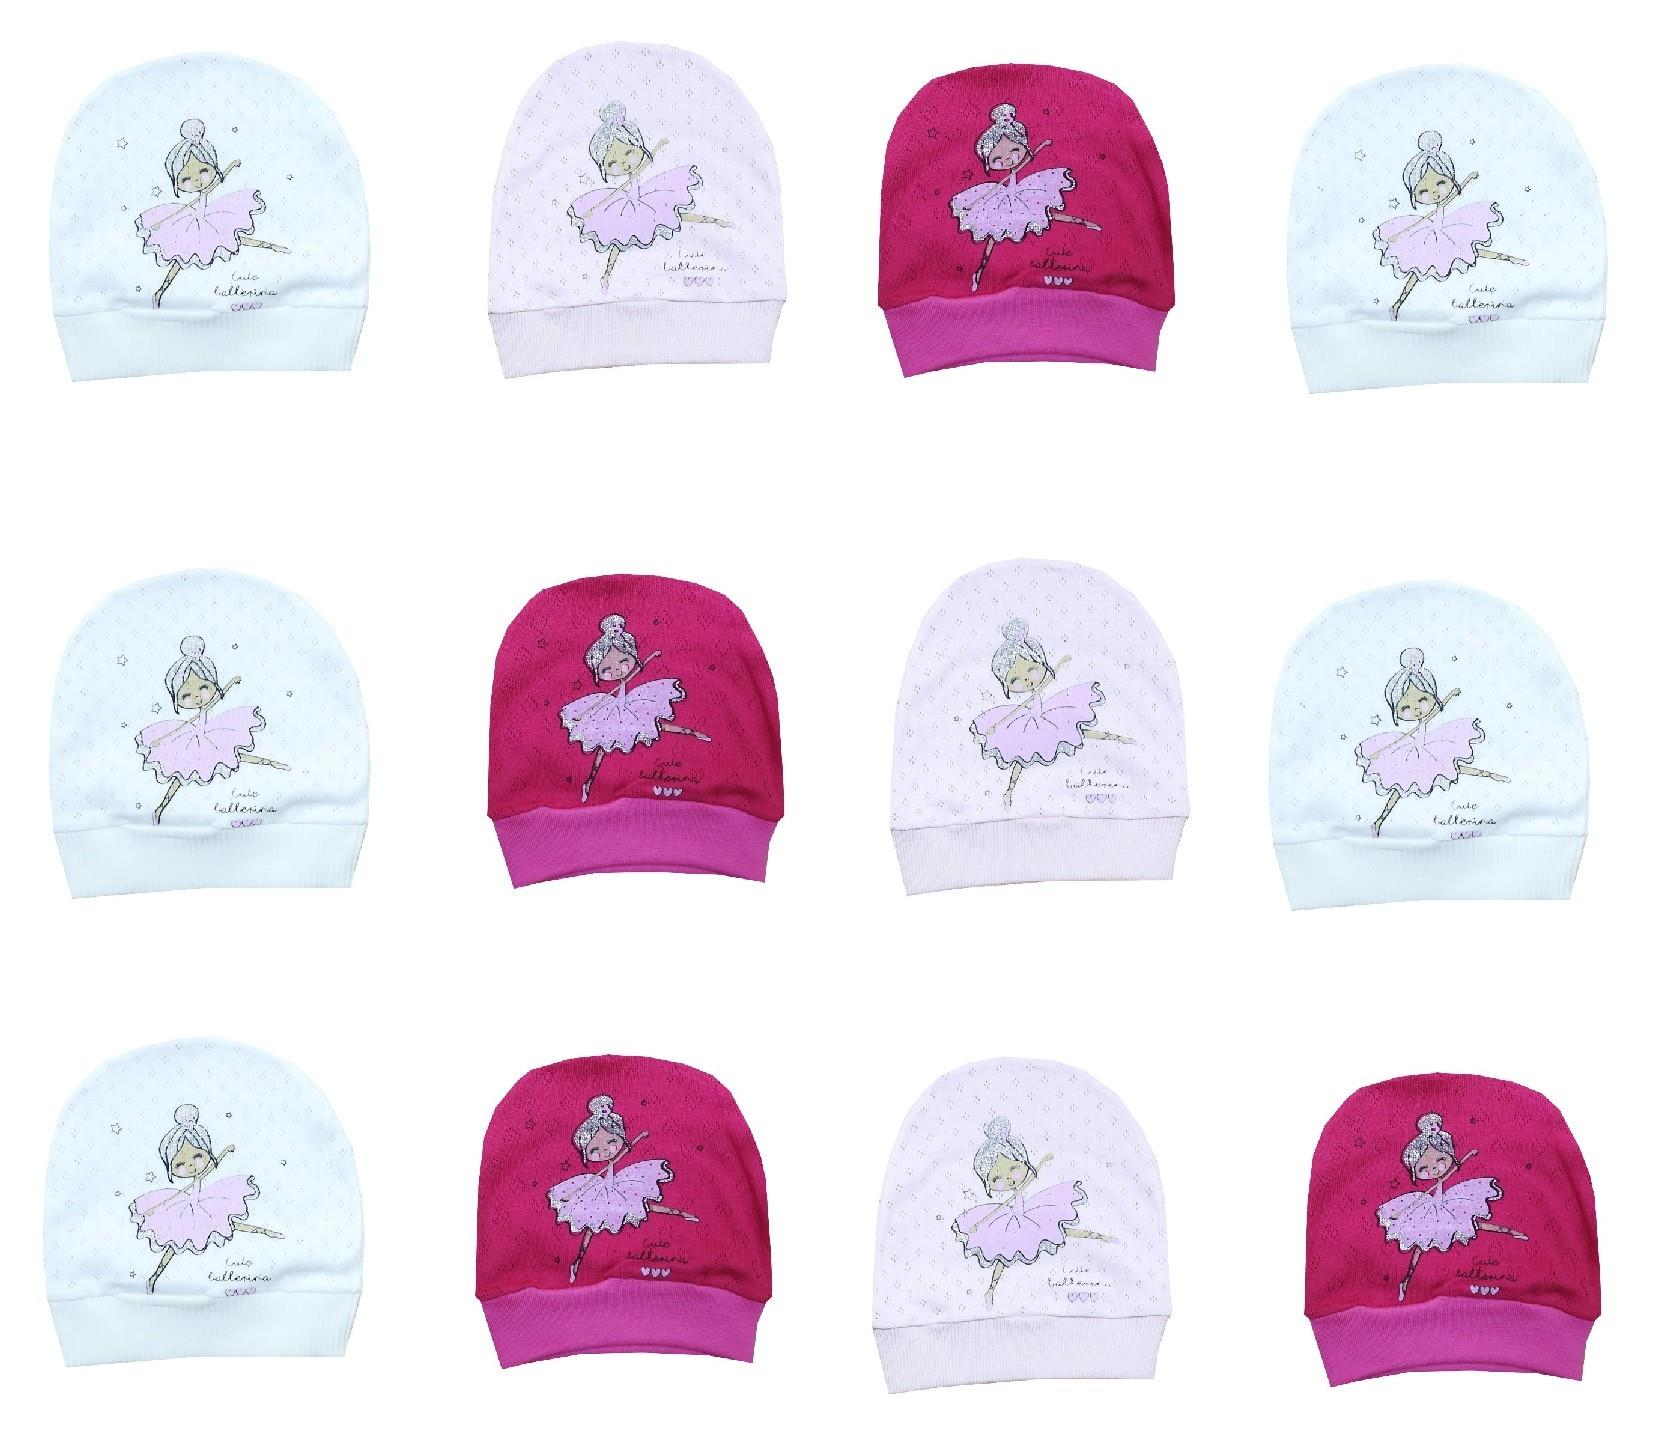 Wholesale balerine print beanies for baby 12 pieces in package